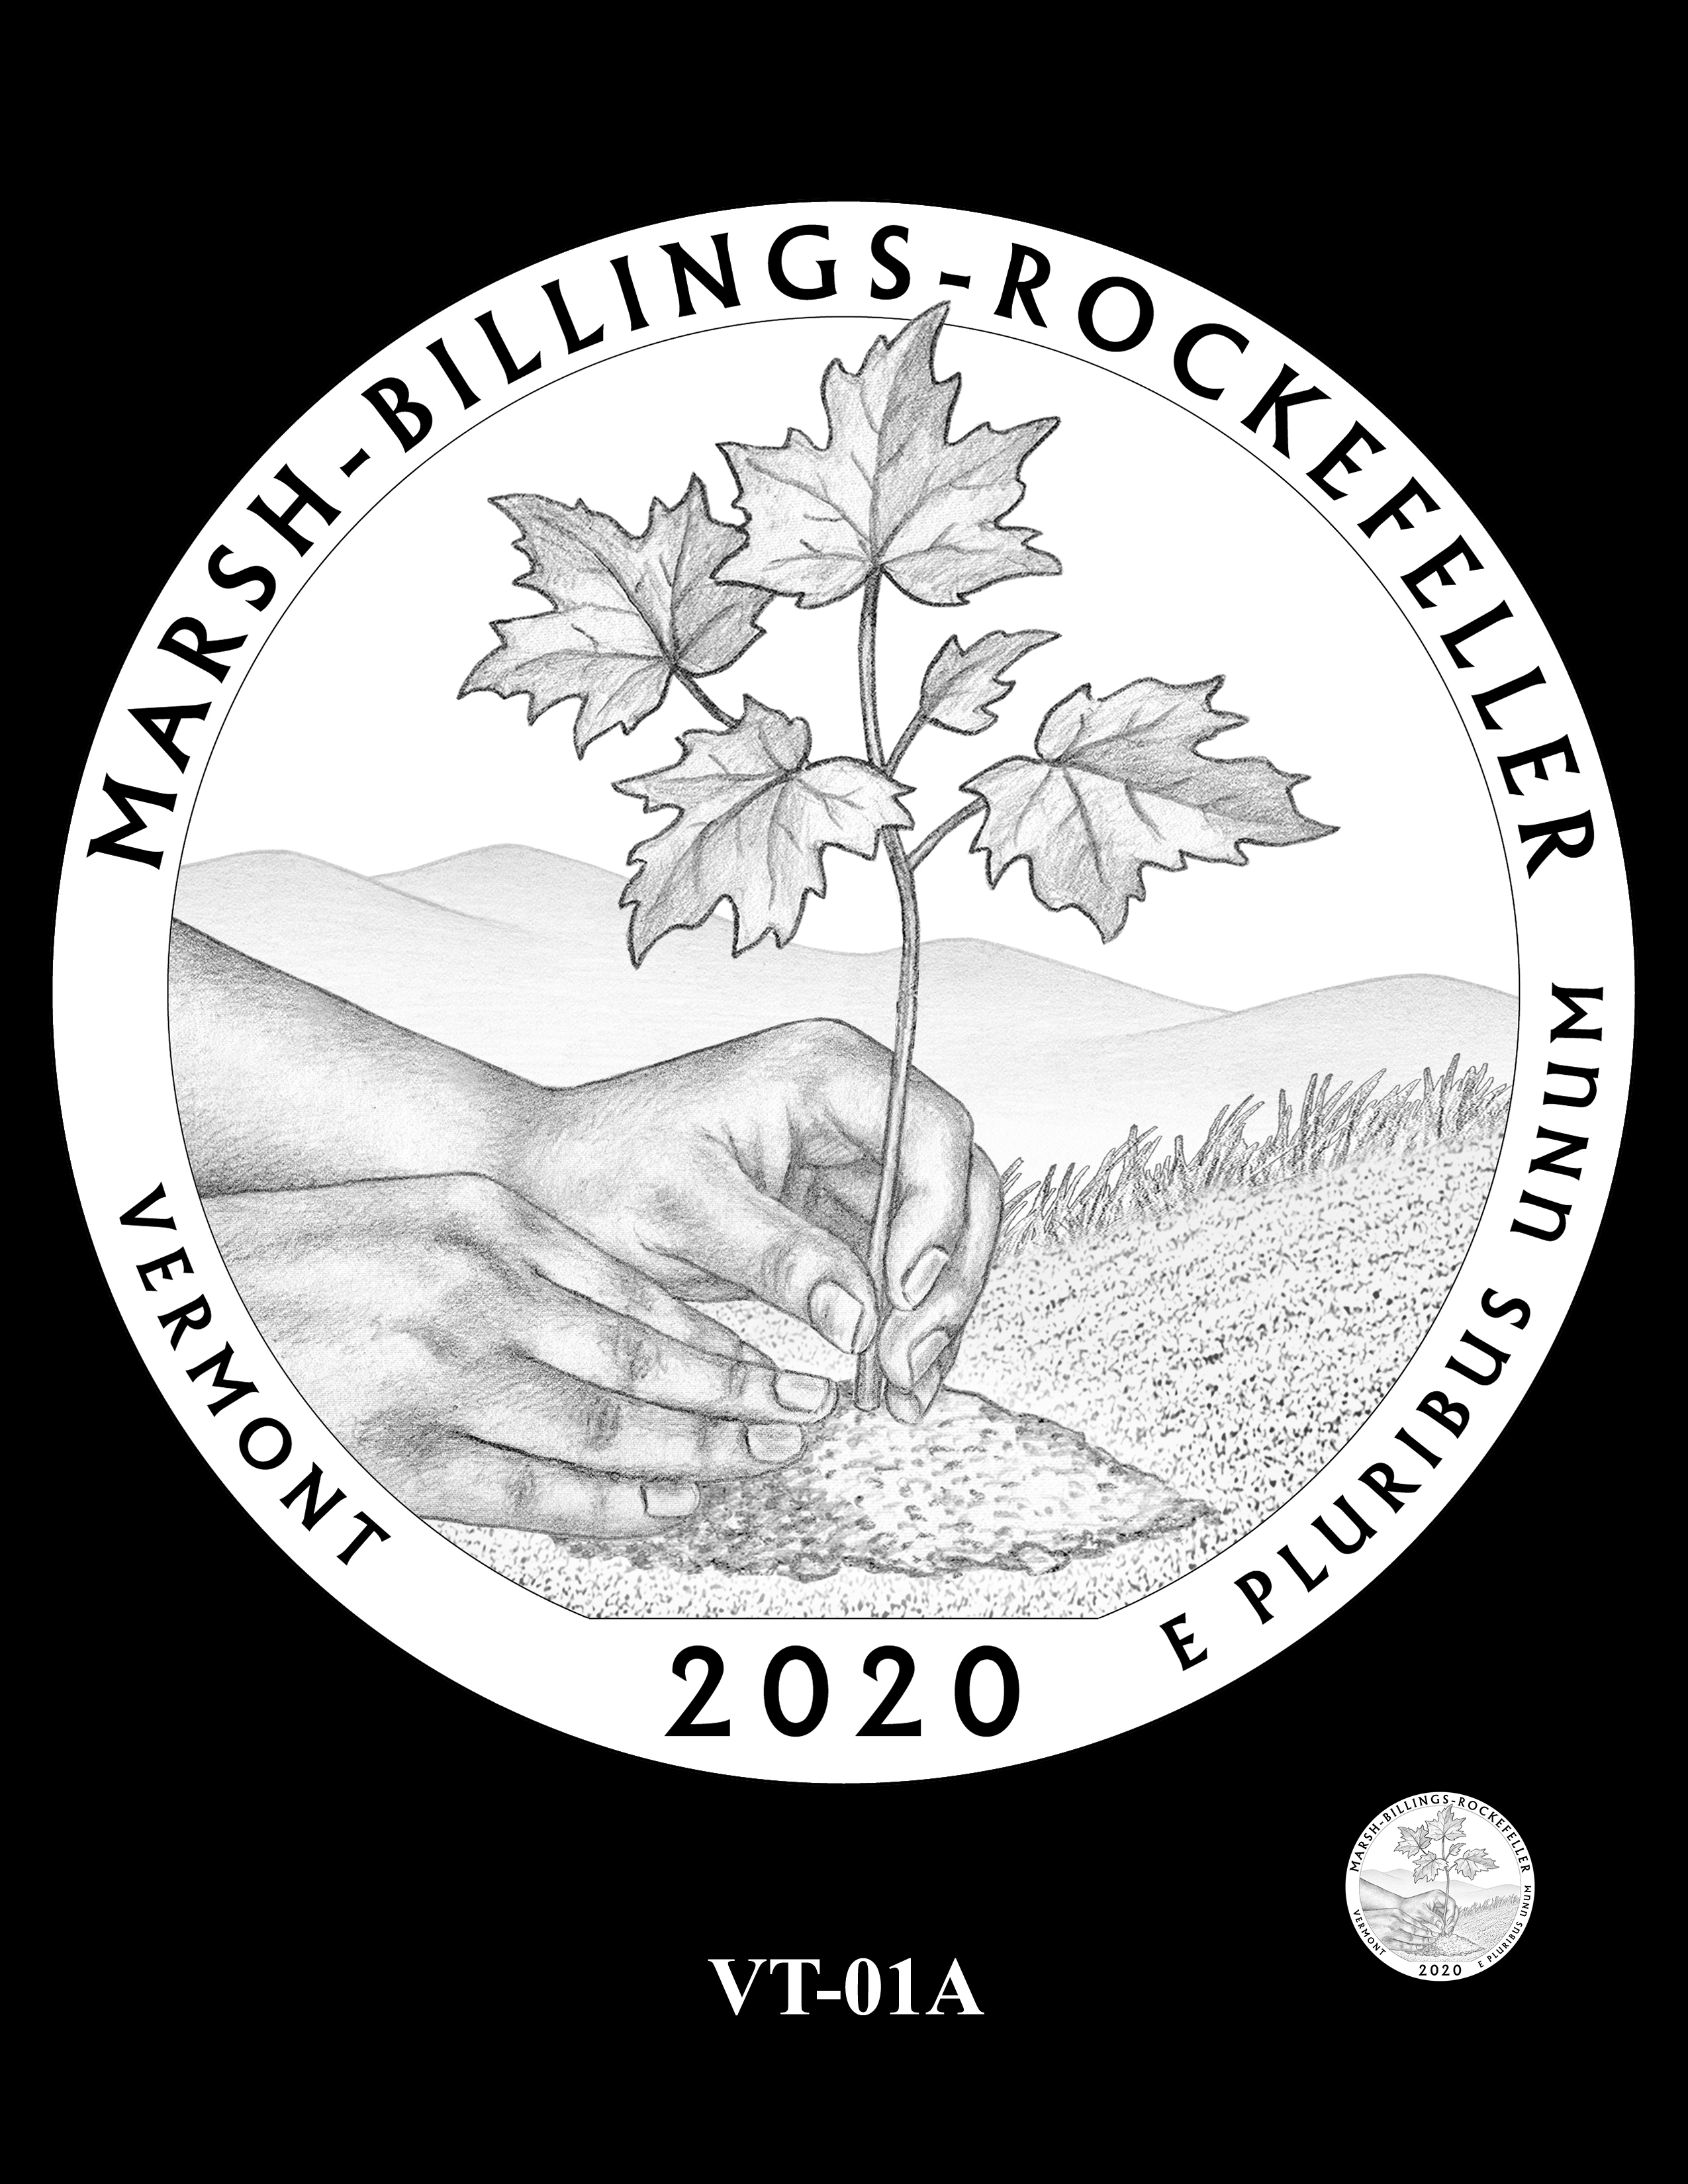 VT-01A -- 2020 America the Beautiful Quarters® Program